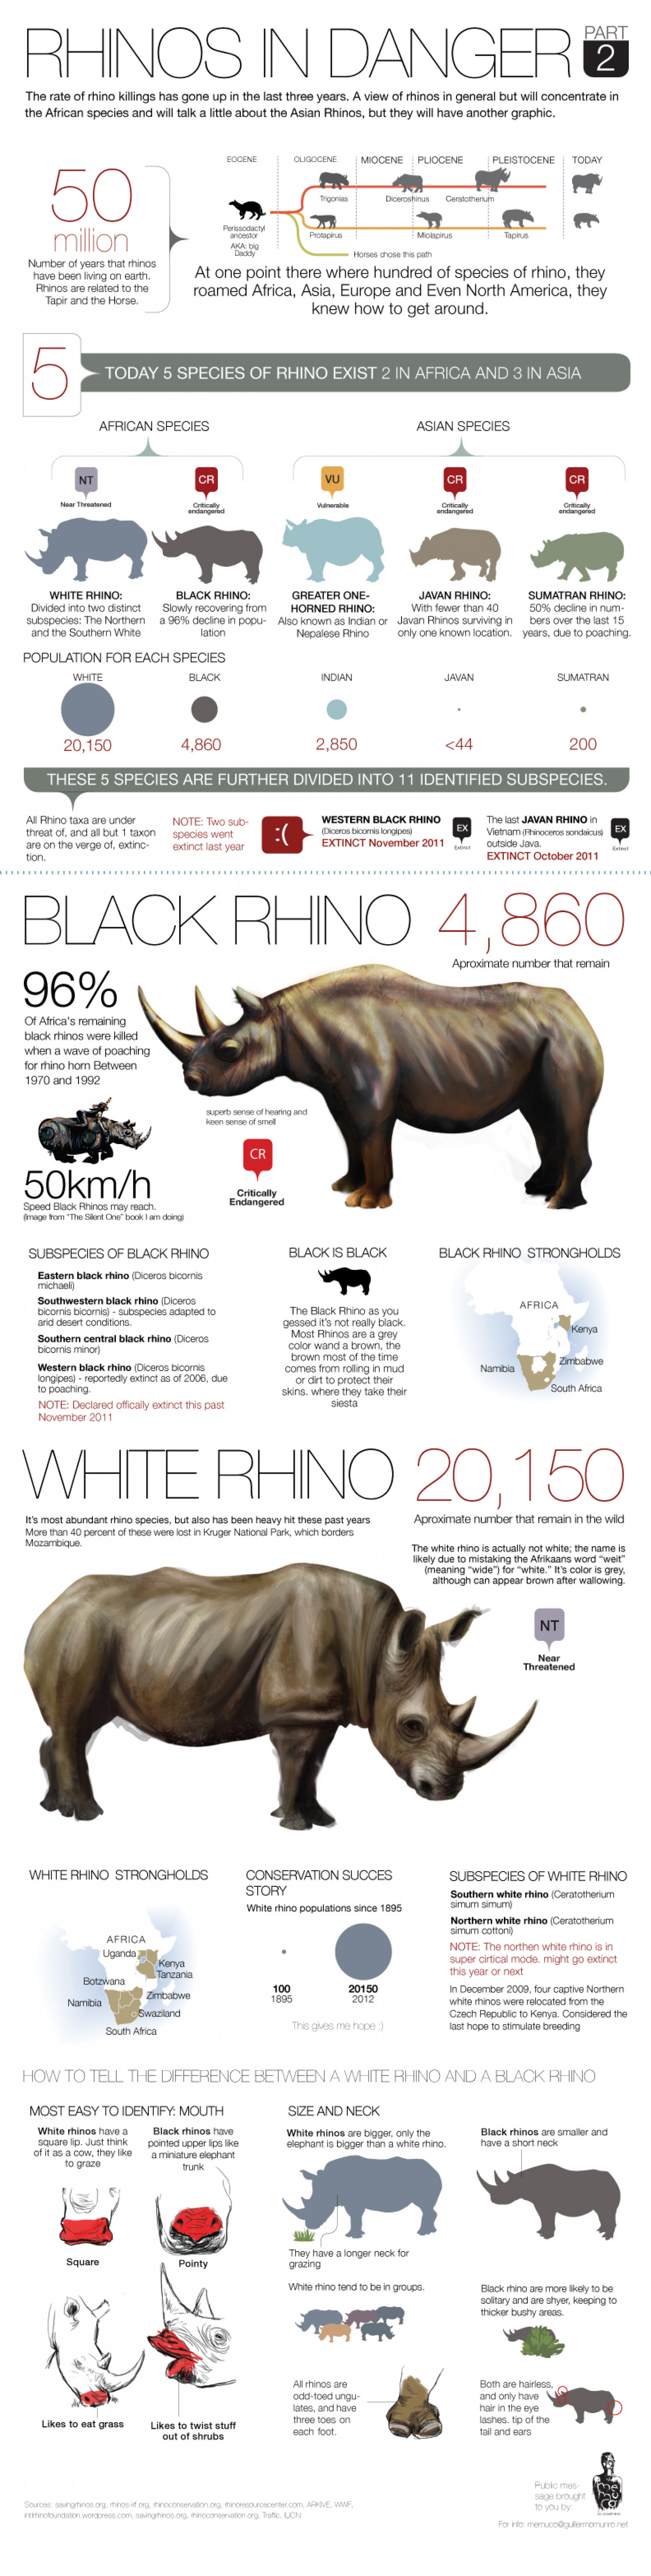 Rhinos in danger part2 Infographic